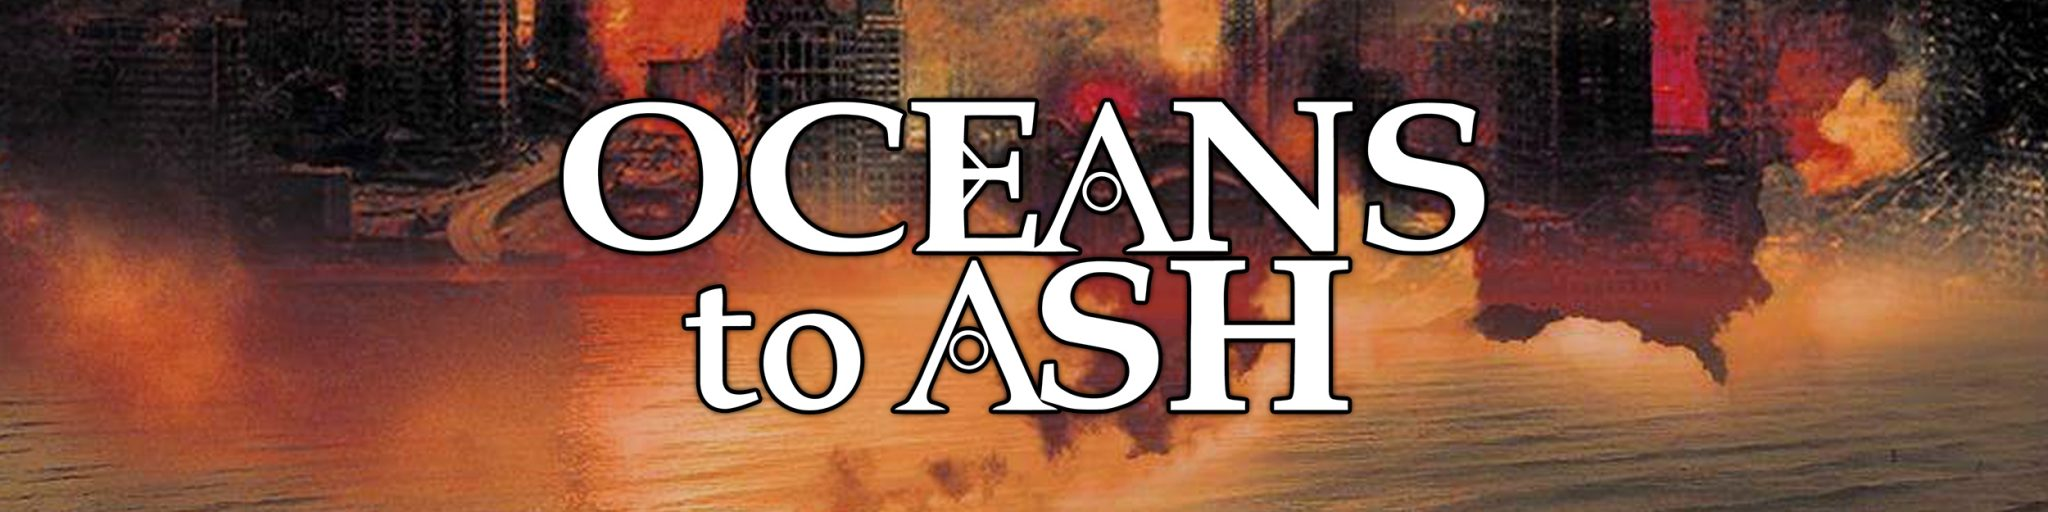 Oceans to Ash